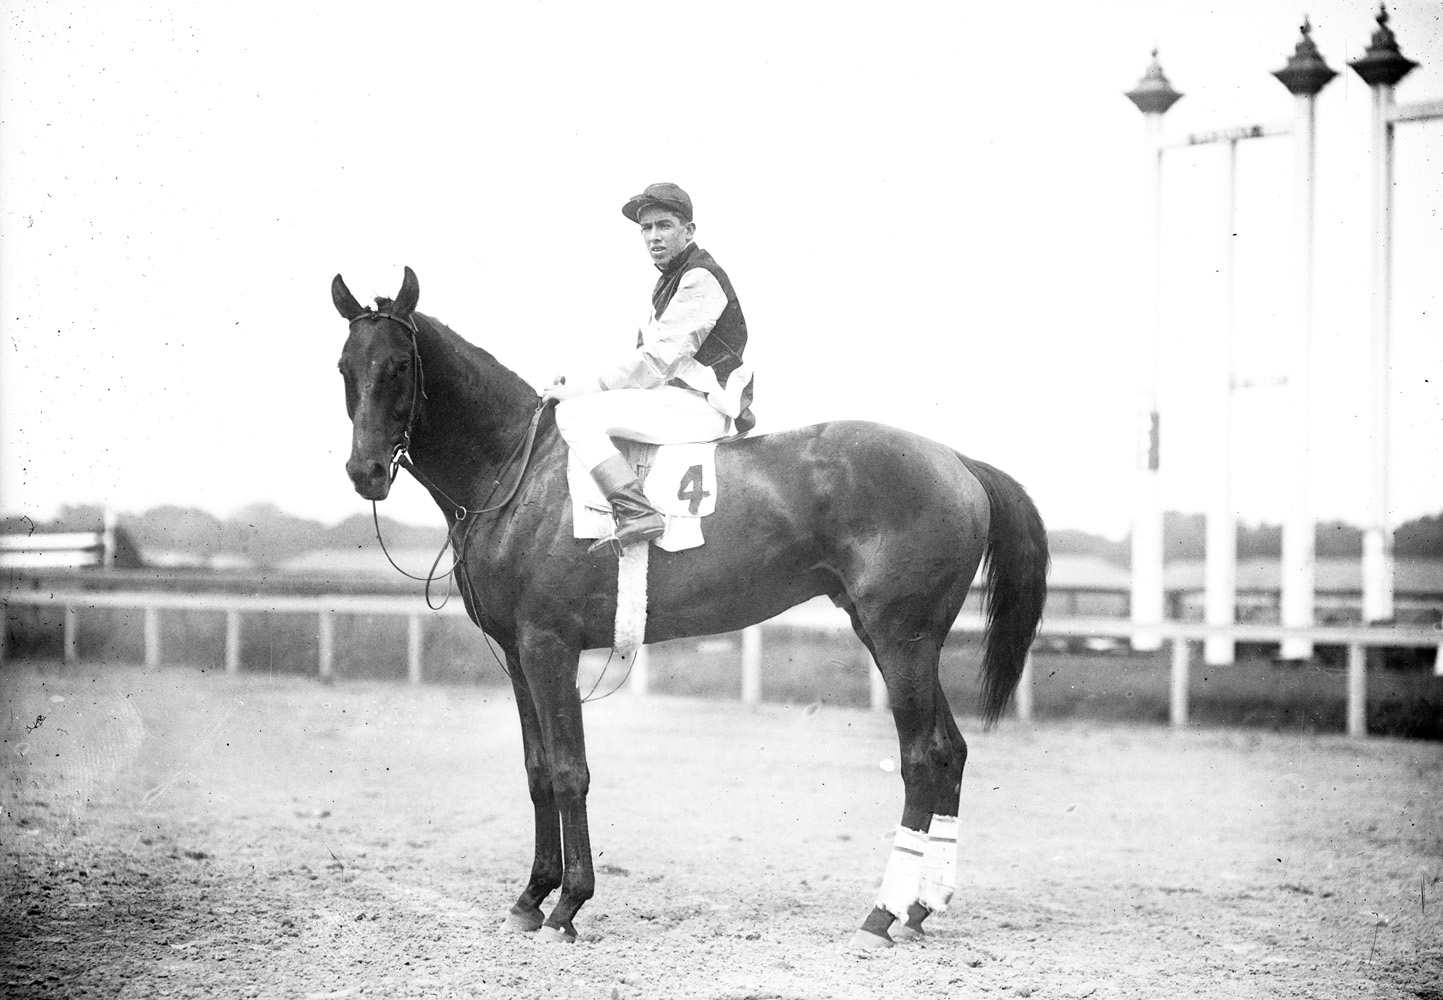 Carroll Shilling and Dalmatian (Keeneland Library Cook Collection)